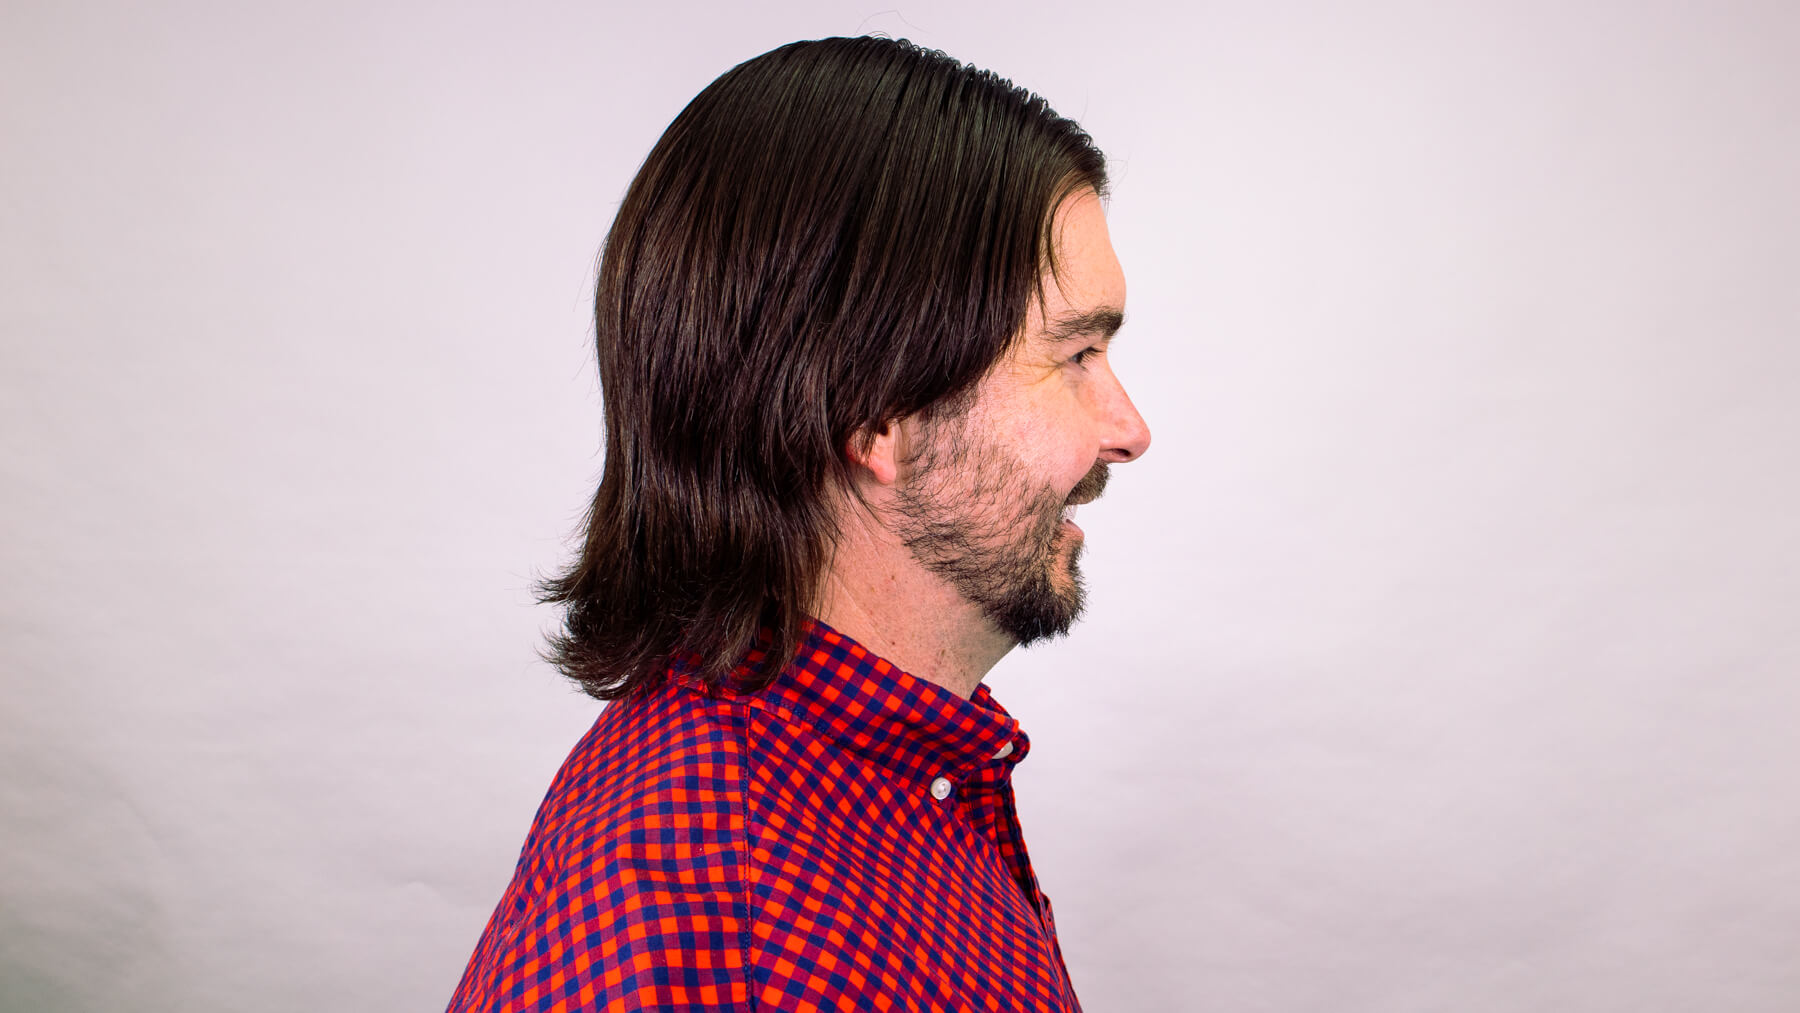 Middle part awkward stage hairstyle side profile view